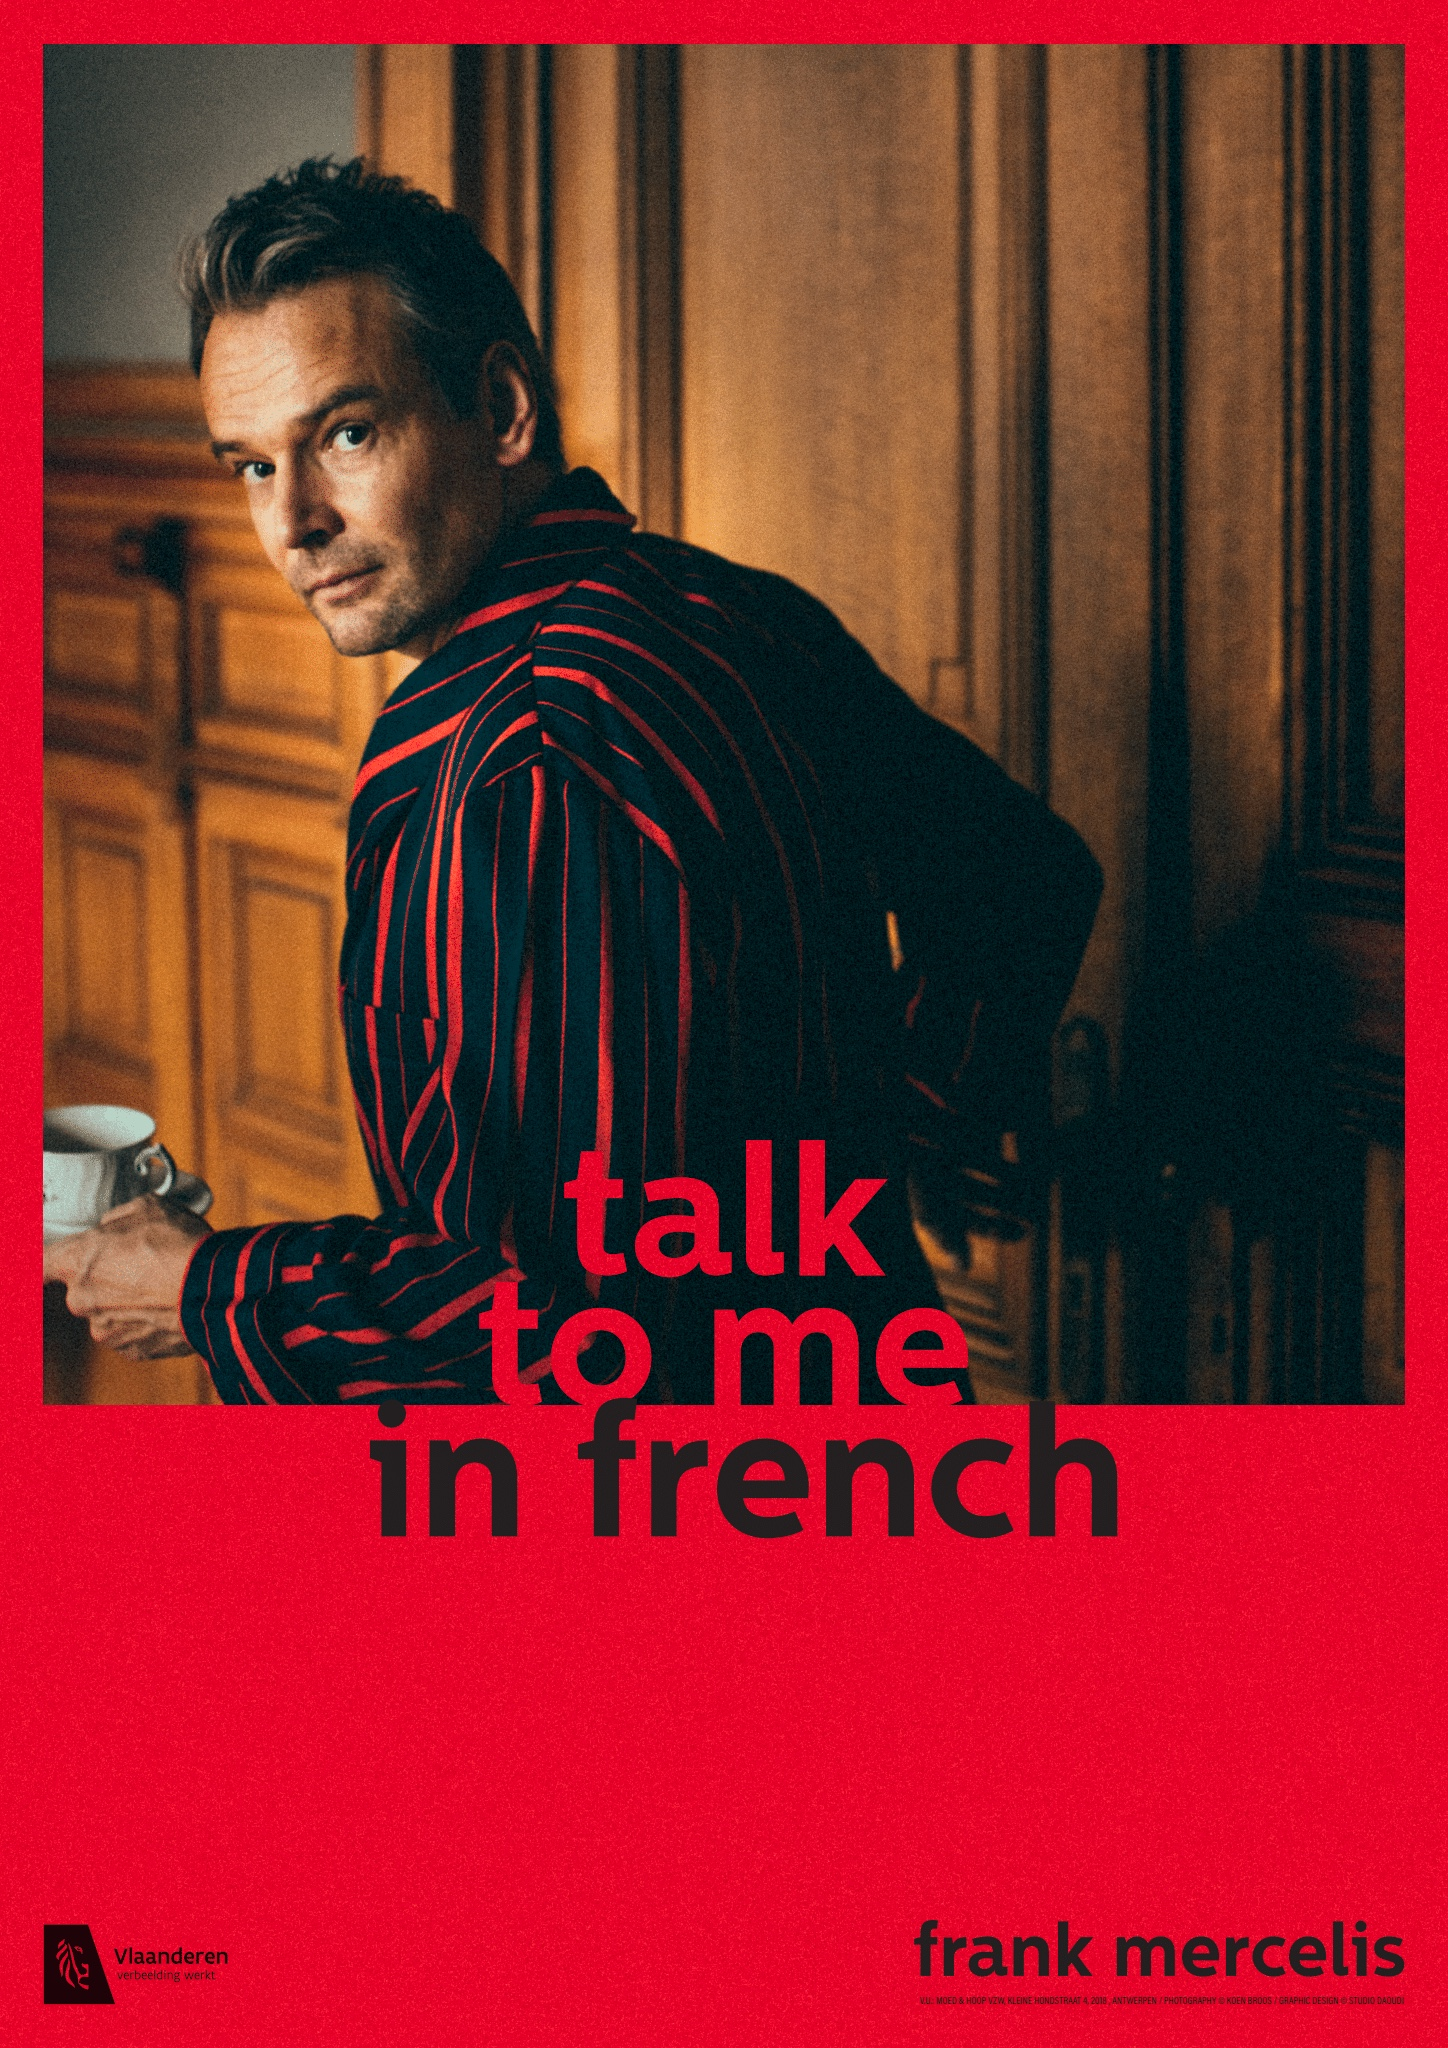 Talk to me in French - Poster